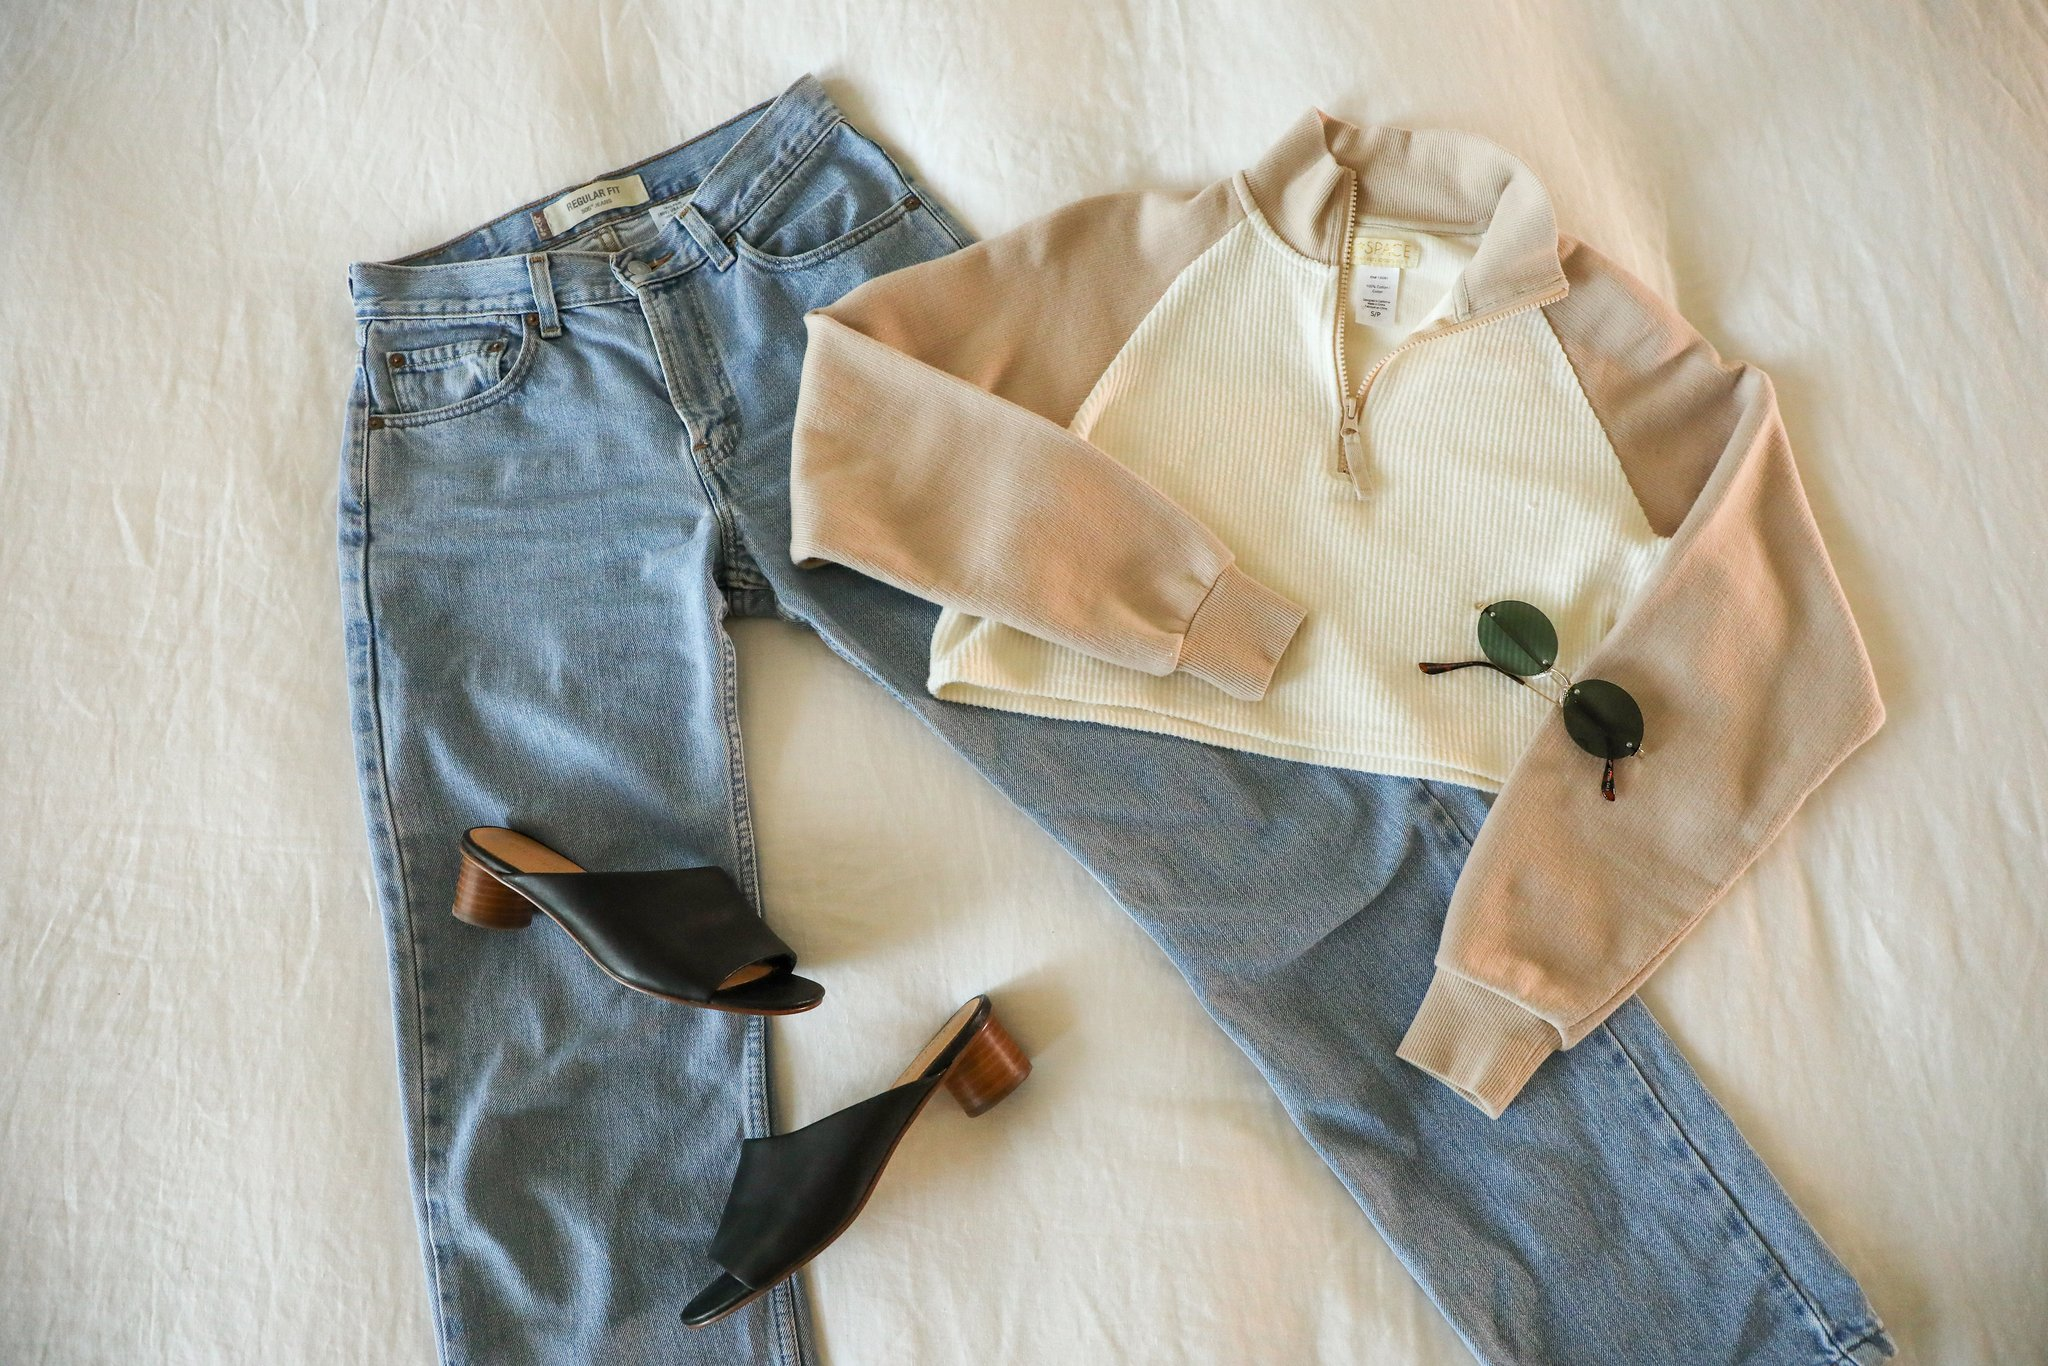 LSPACE Staycation pullover flat lay paired with jeans